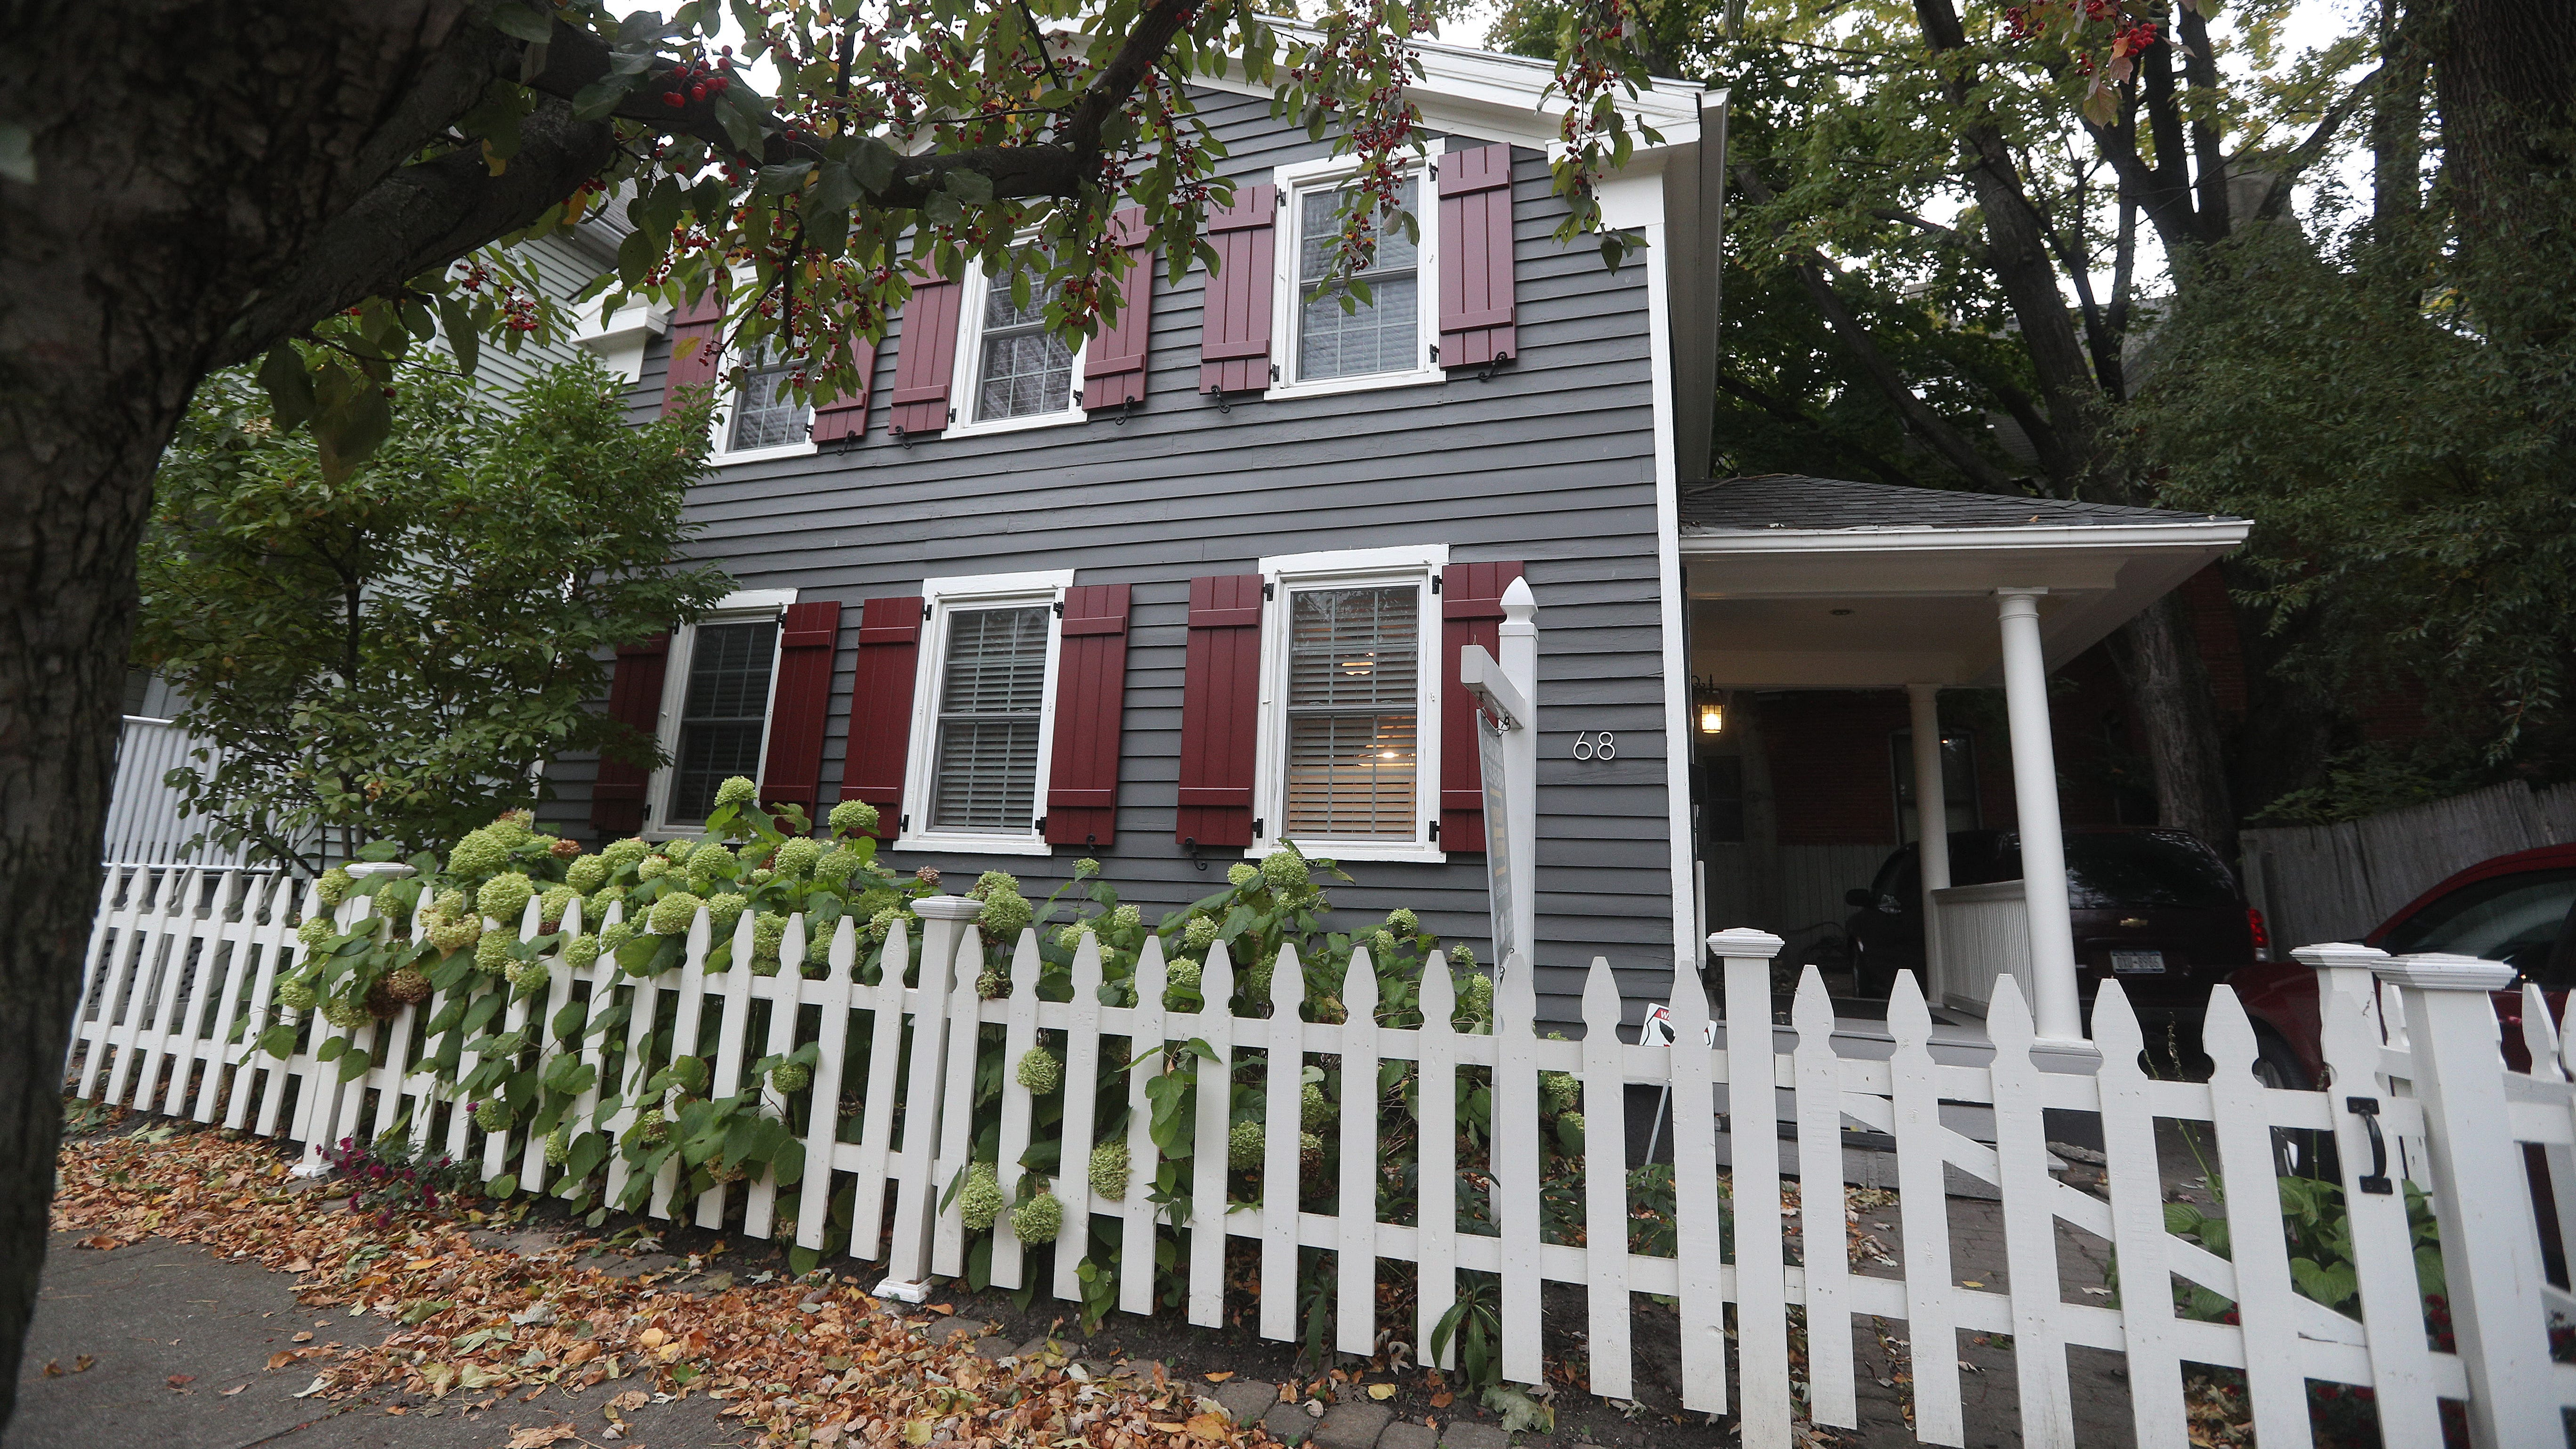 This charming 897-square-foot house in Corn Hill has wonderful curb appeal.